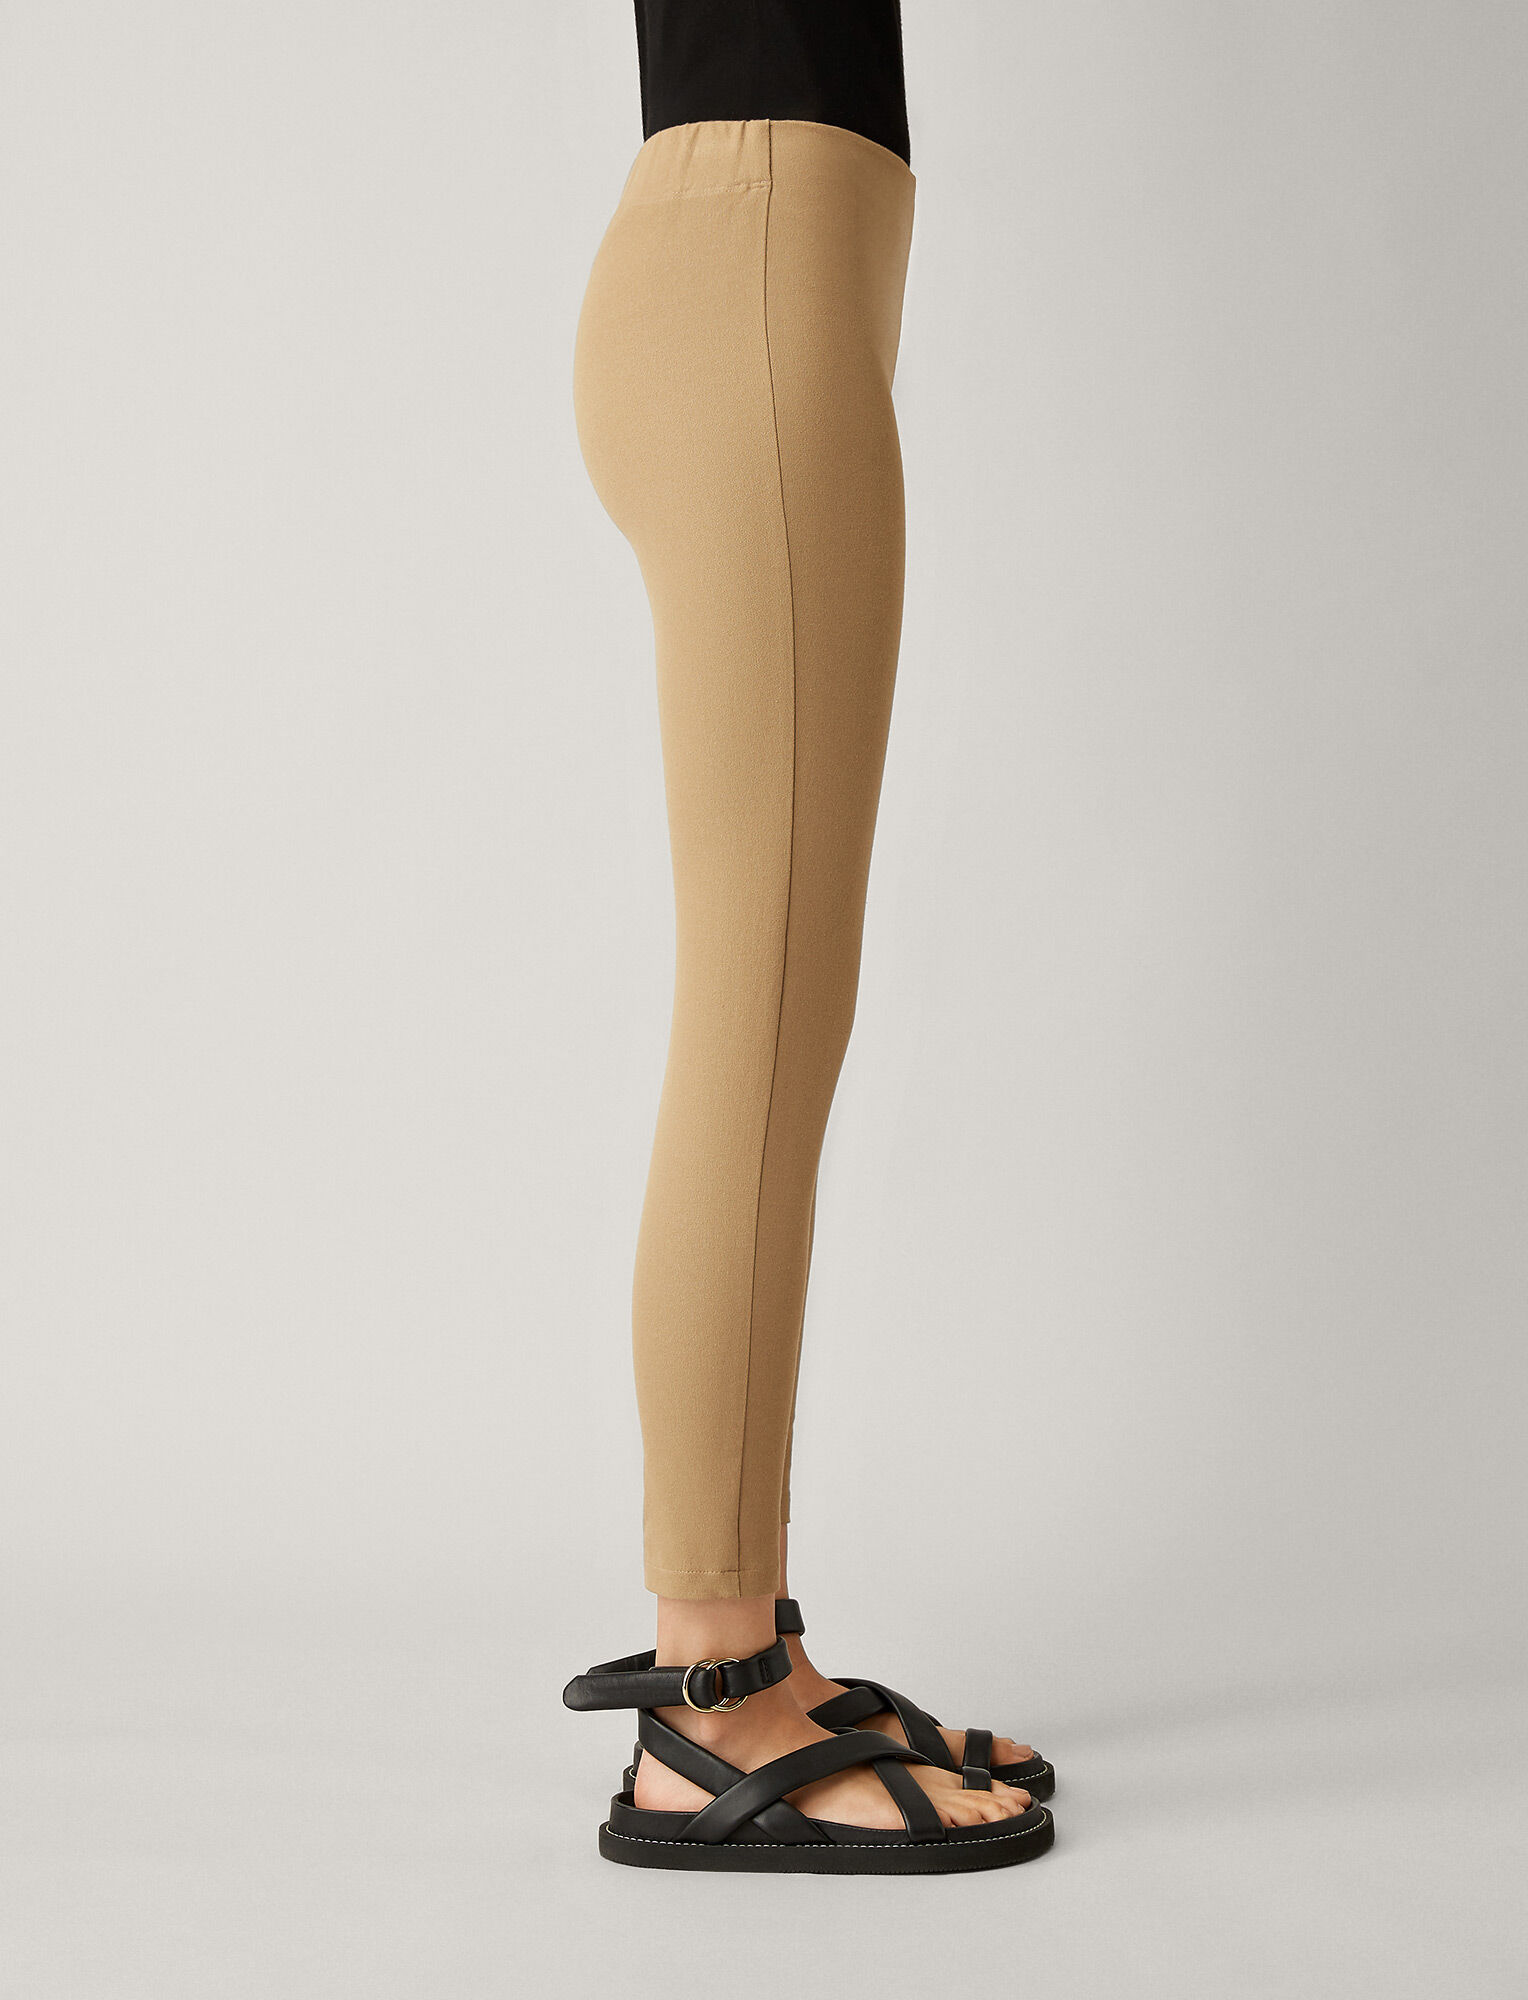 Joseph, Nitro Gabardine Stretch Leggings, in CAMEL